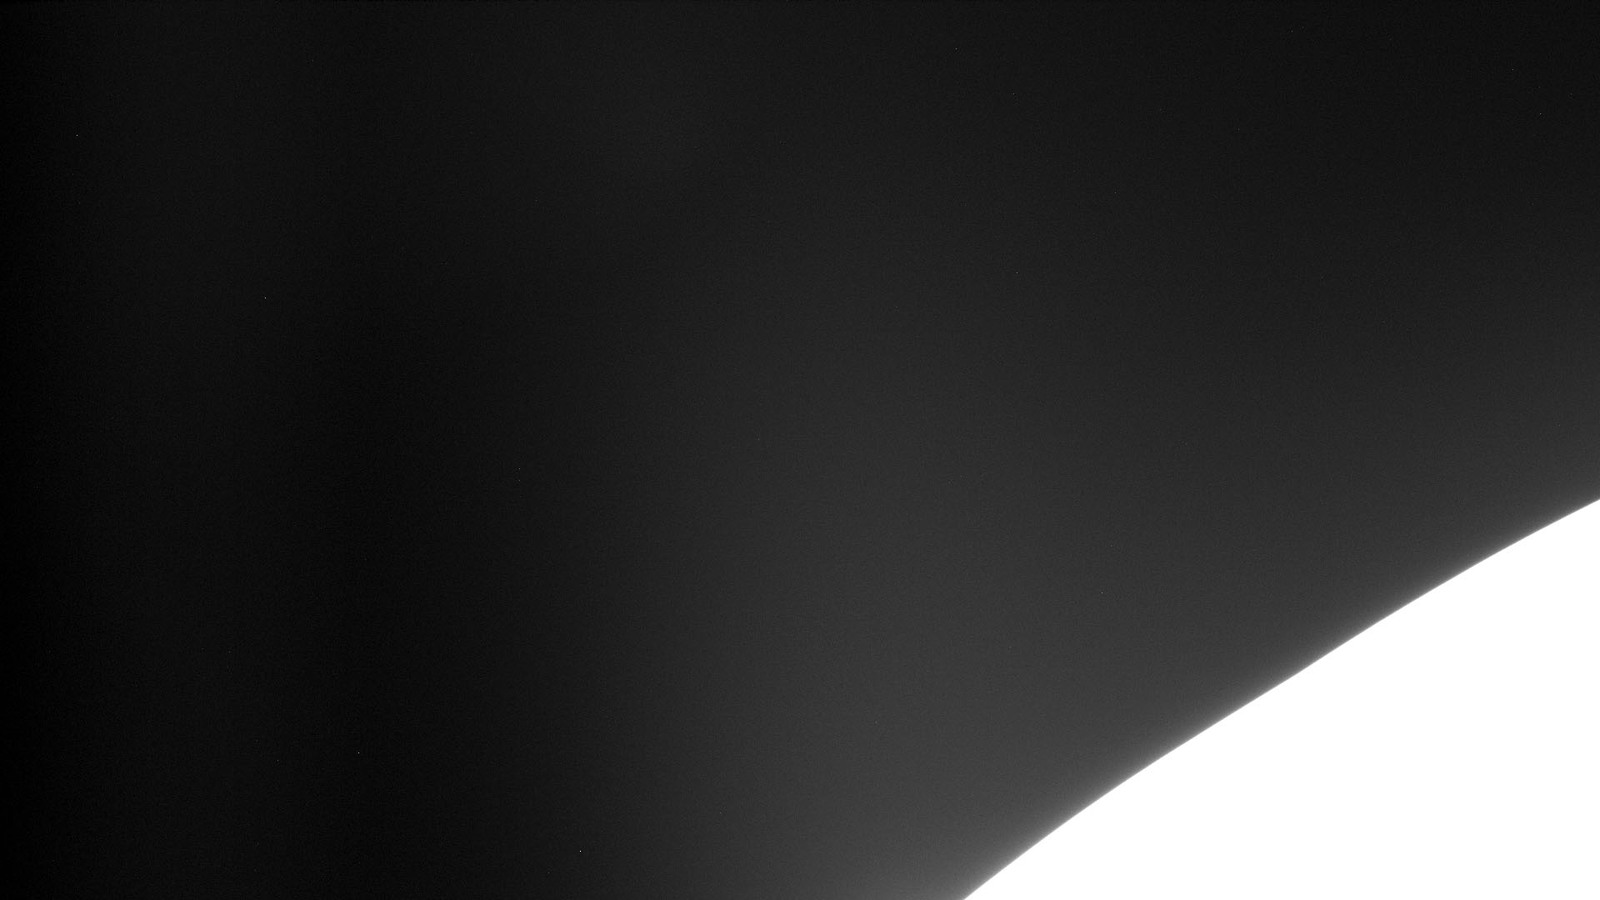 S127E010384 - STS-127 - Survey view of the Orbiter Endeavour.